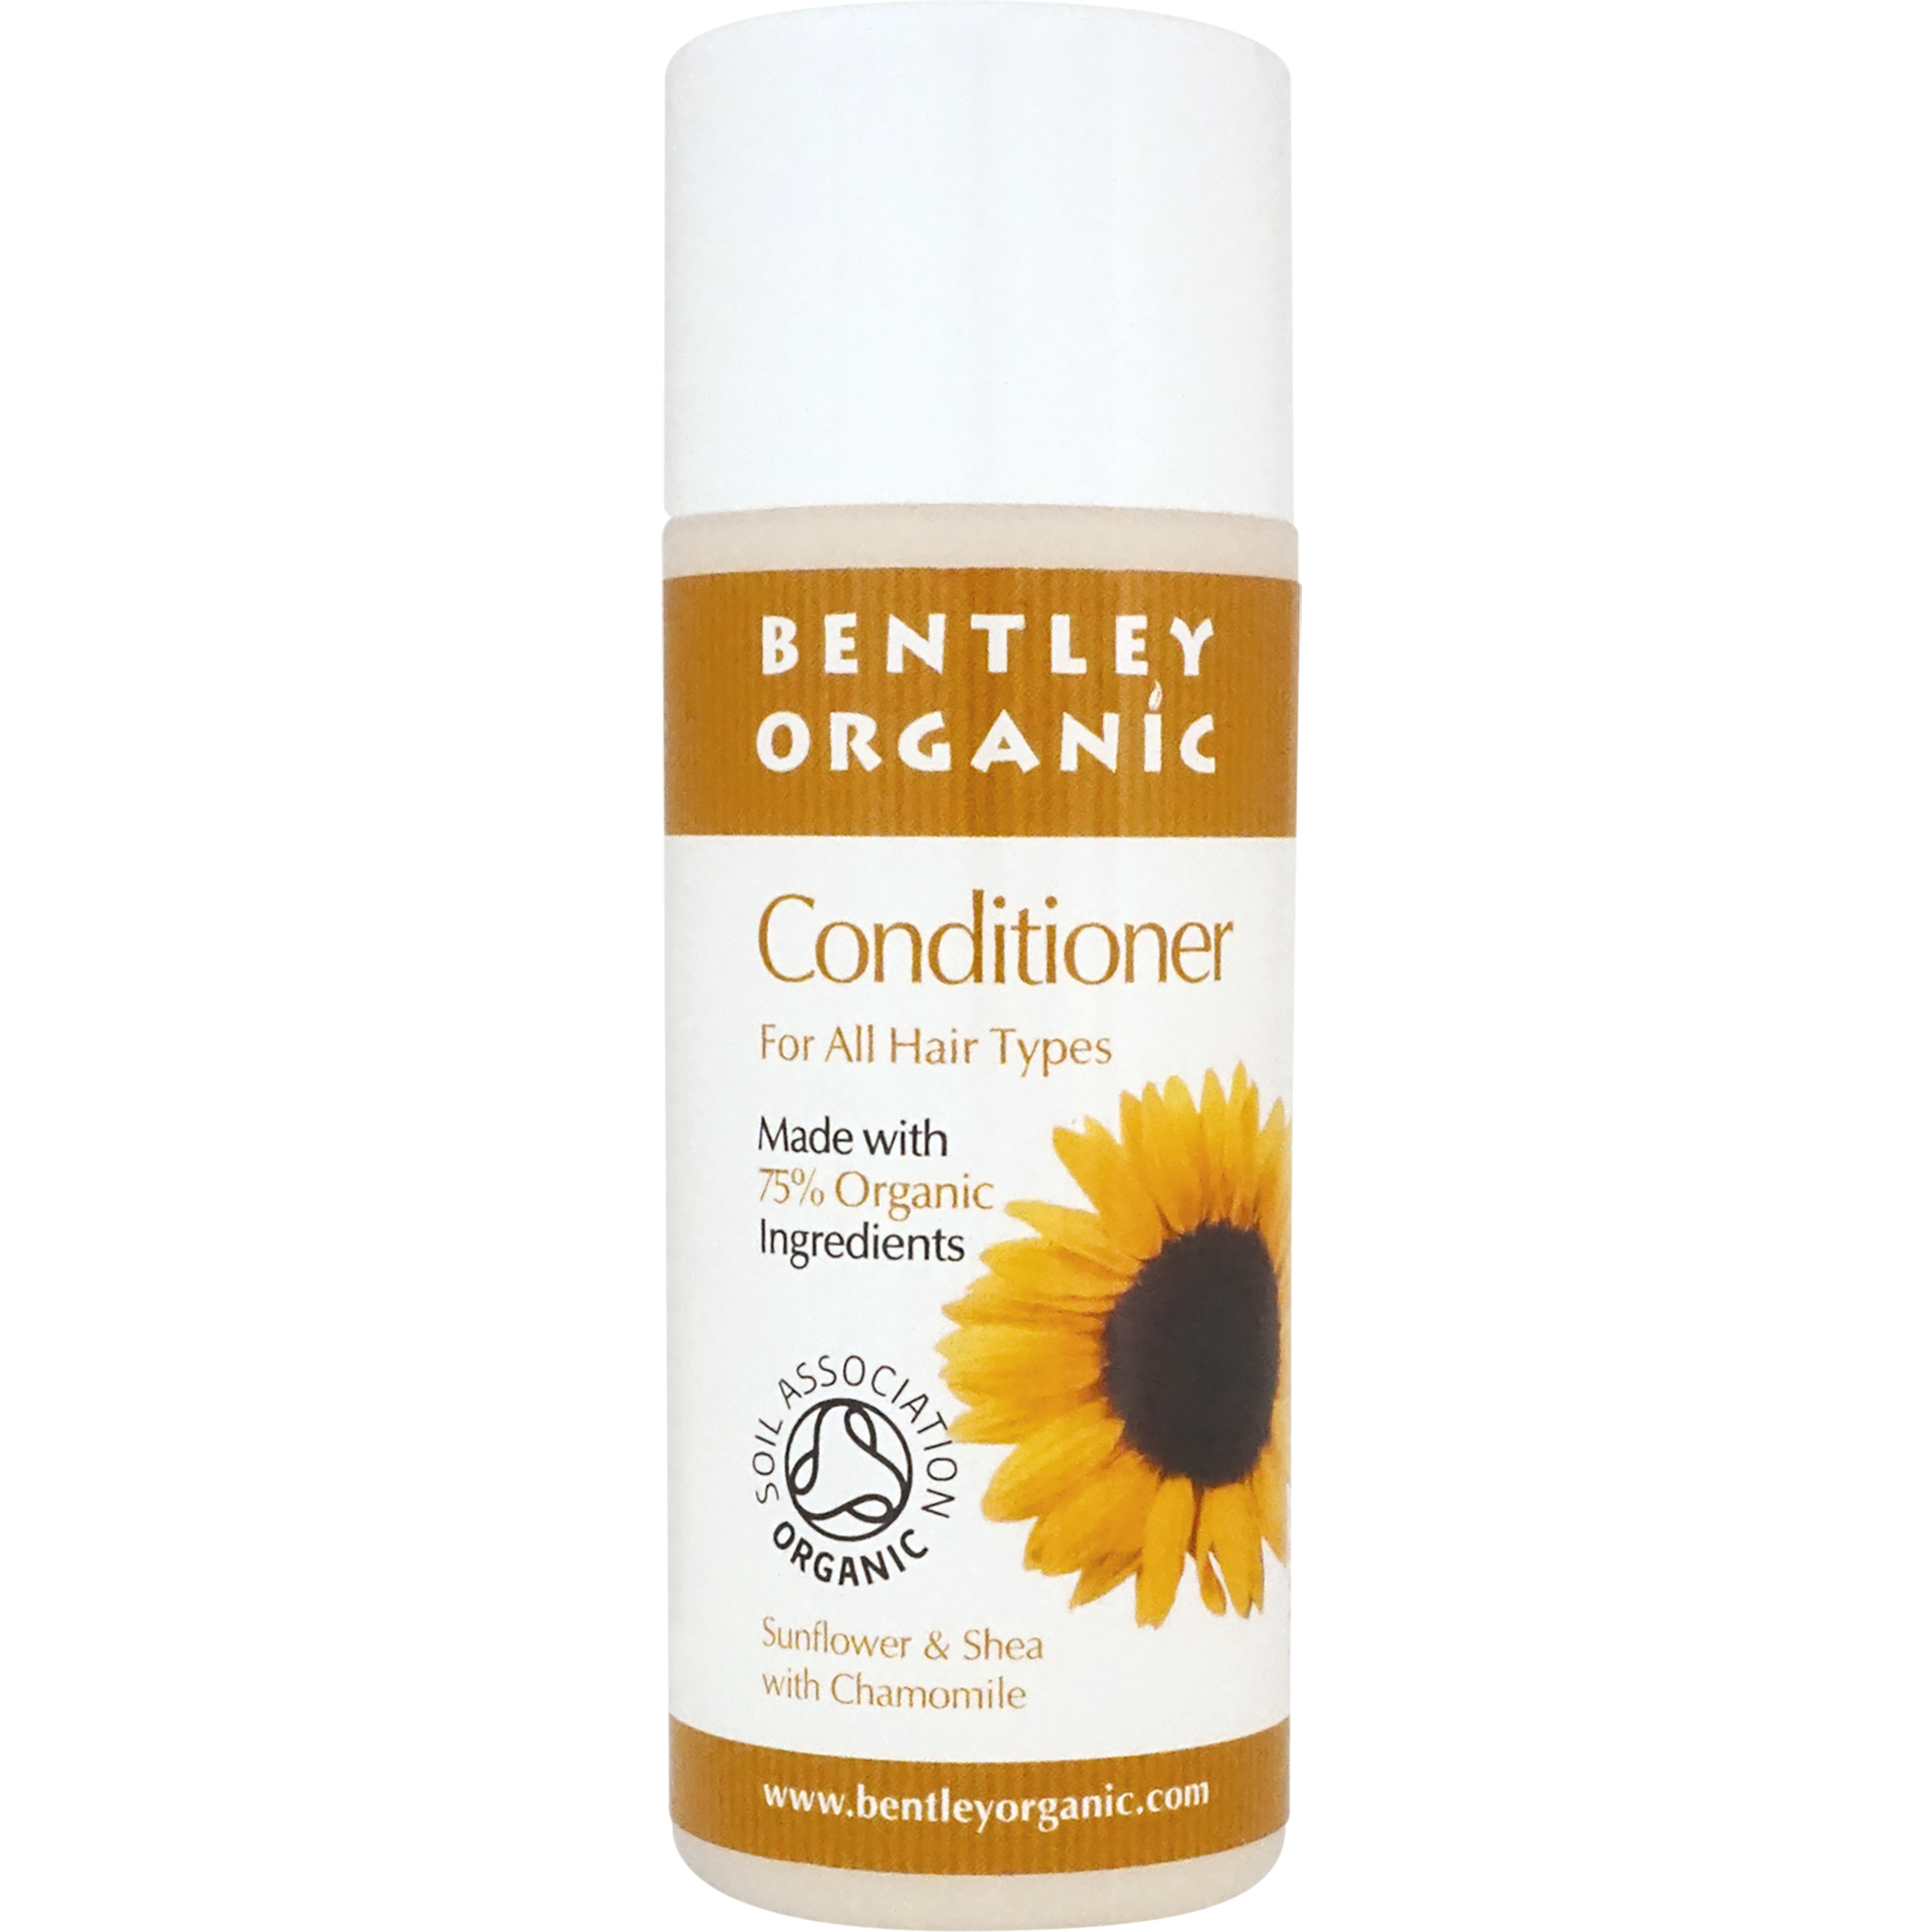 Conditioner with Sunflower, Shea and Chamomile